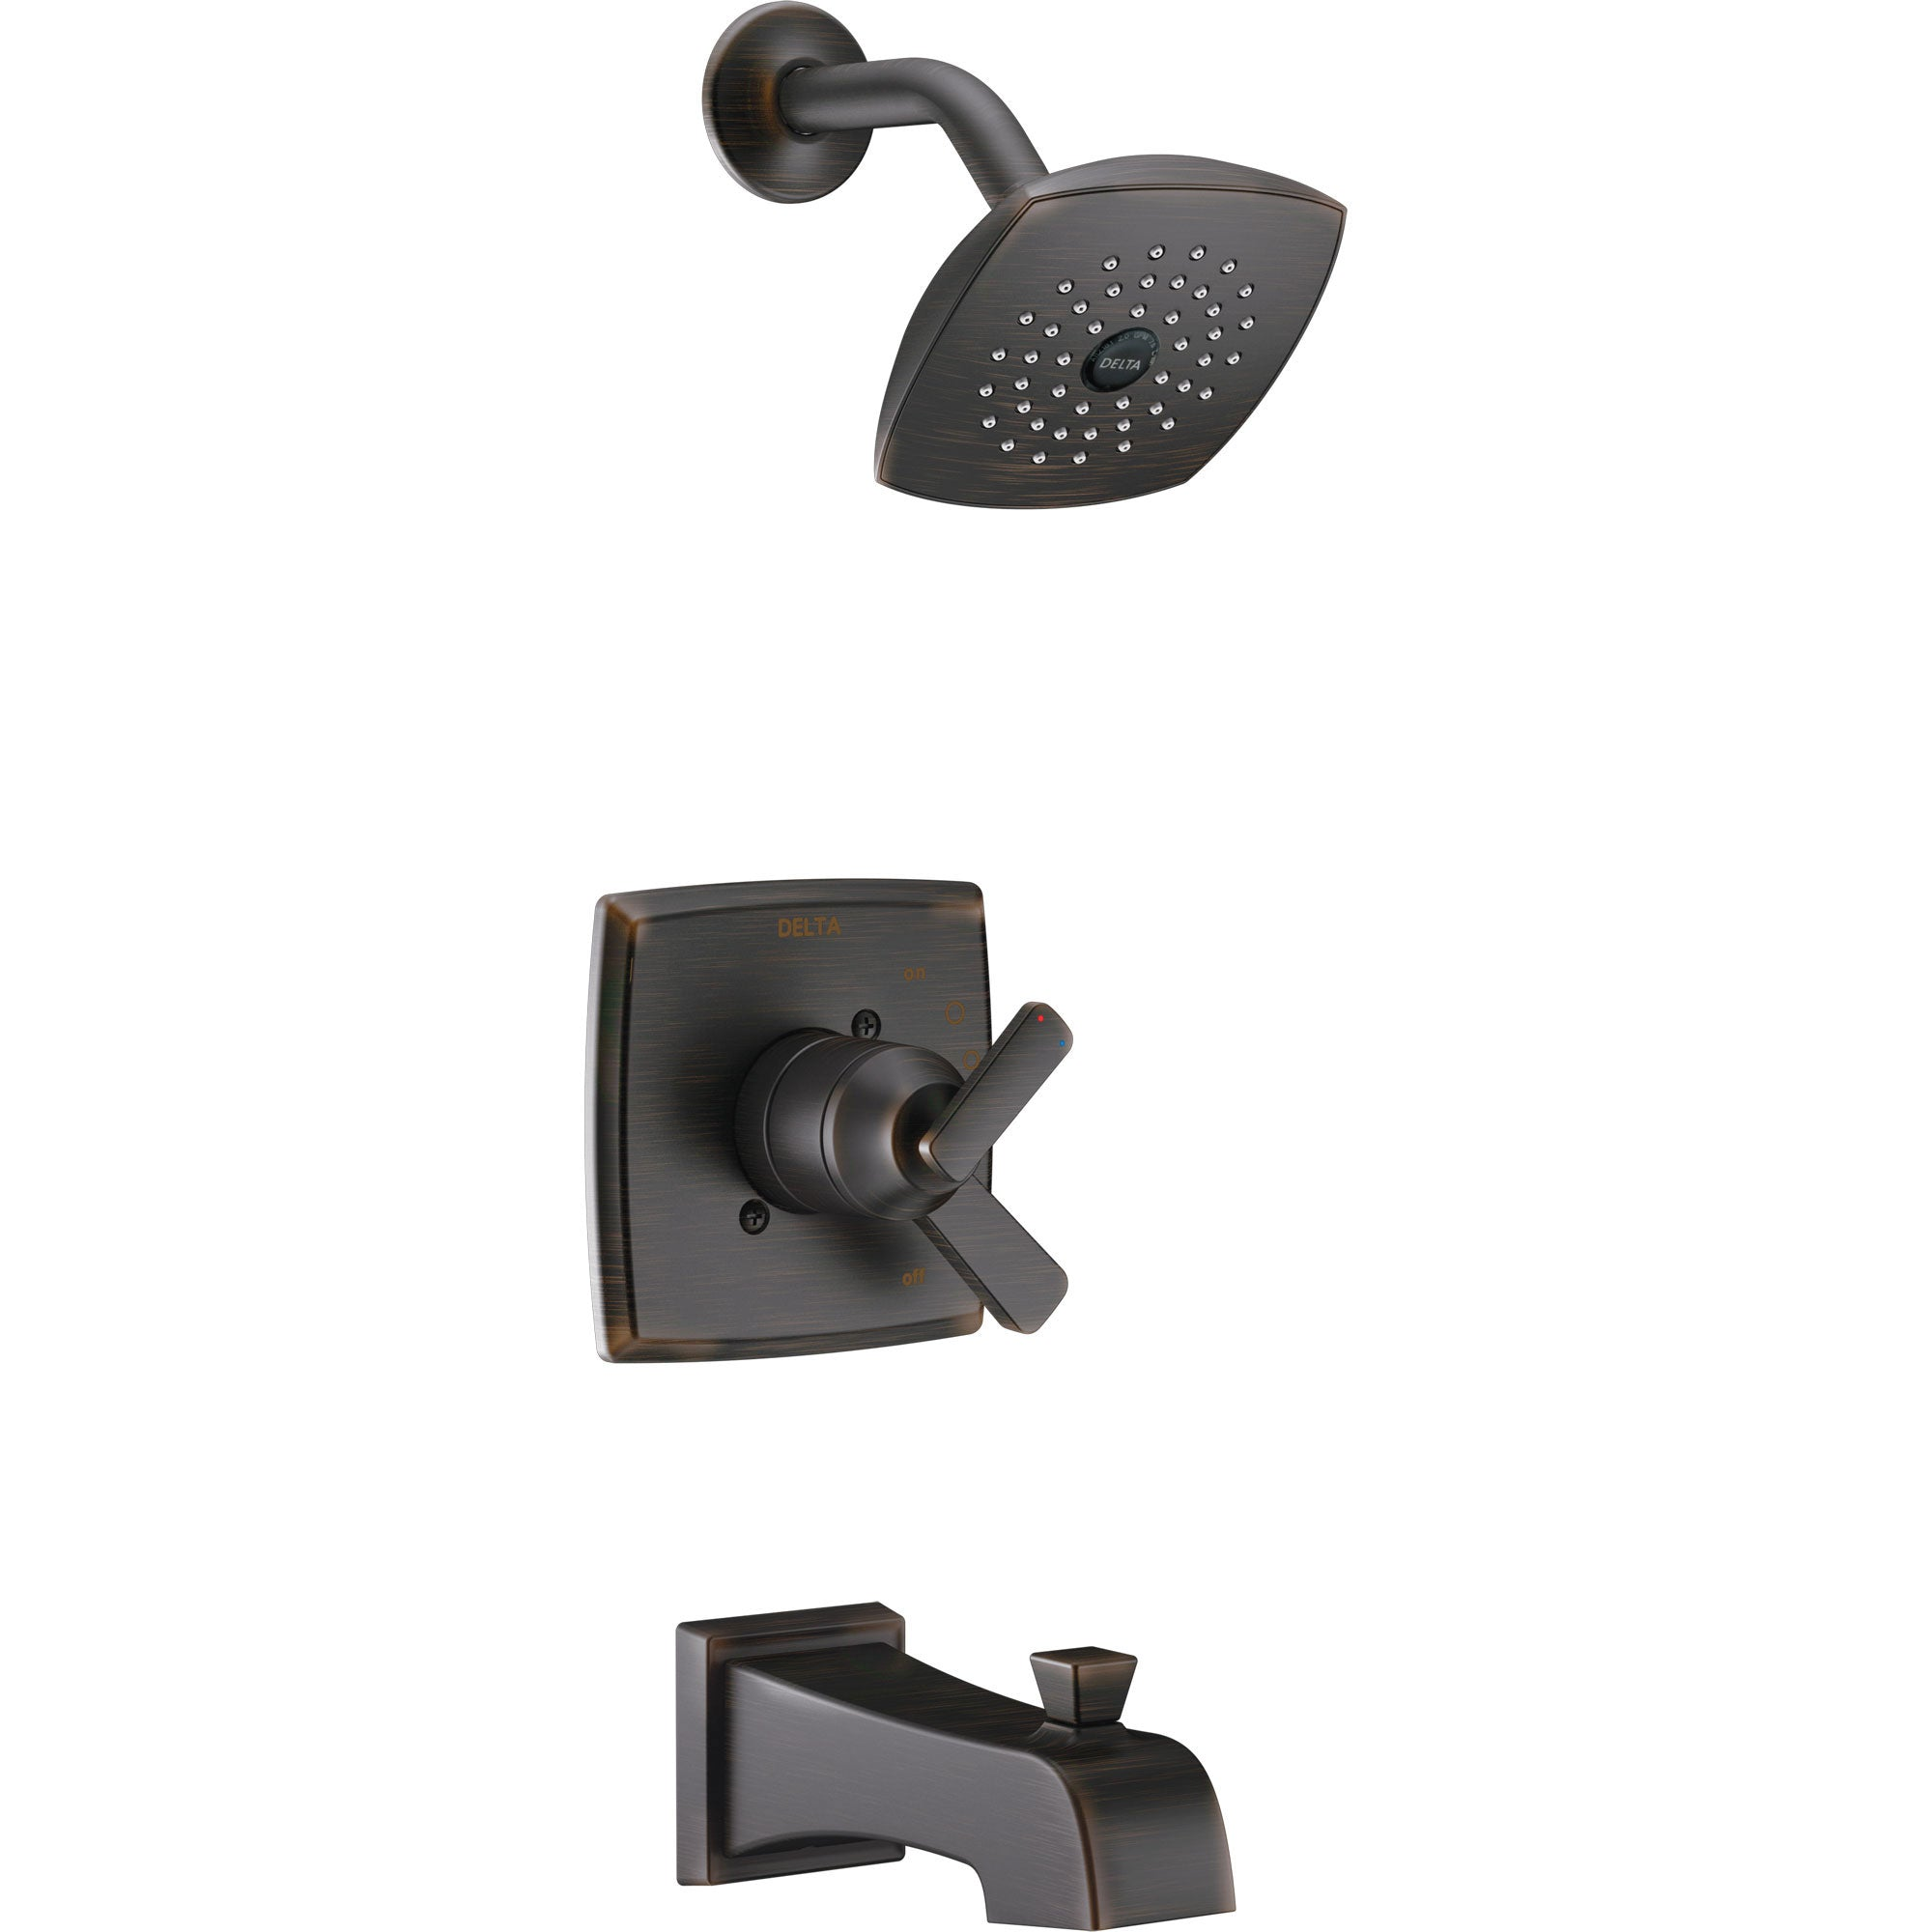 Delta Ashlyn Venetian Bronze Monitor 17 Series Tub and Shower Combo Faucet with Dual Temperature and Pressure Control INCLUDES Rough-in Valve D1120V